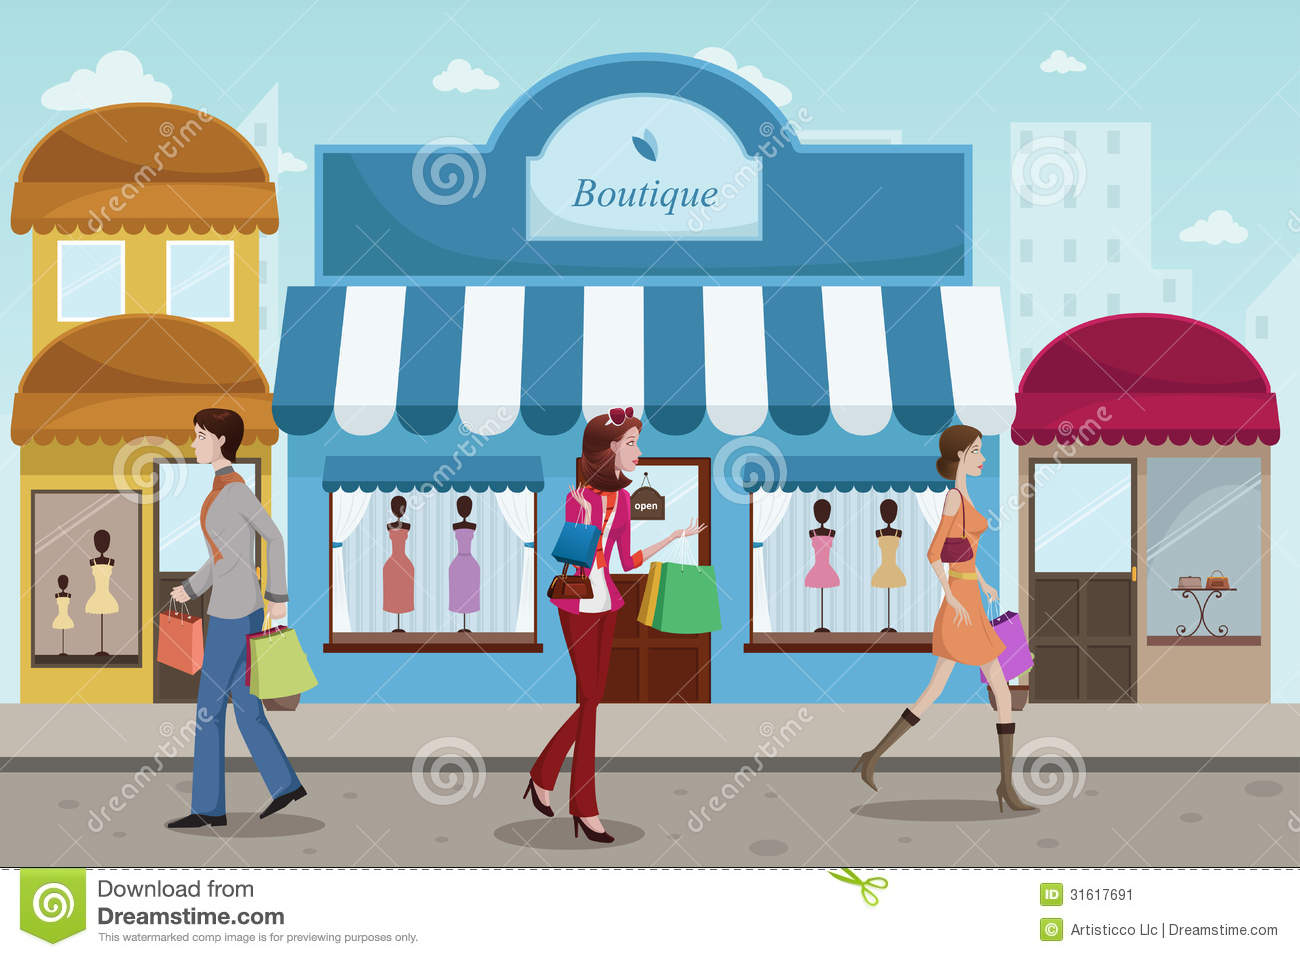 People shopping in an outdoor mall with french boutique for Boutique center